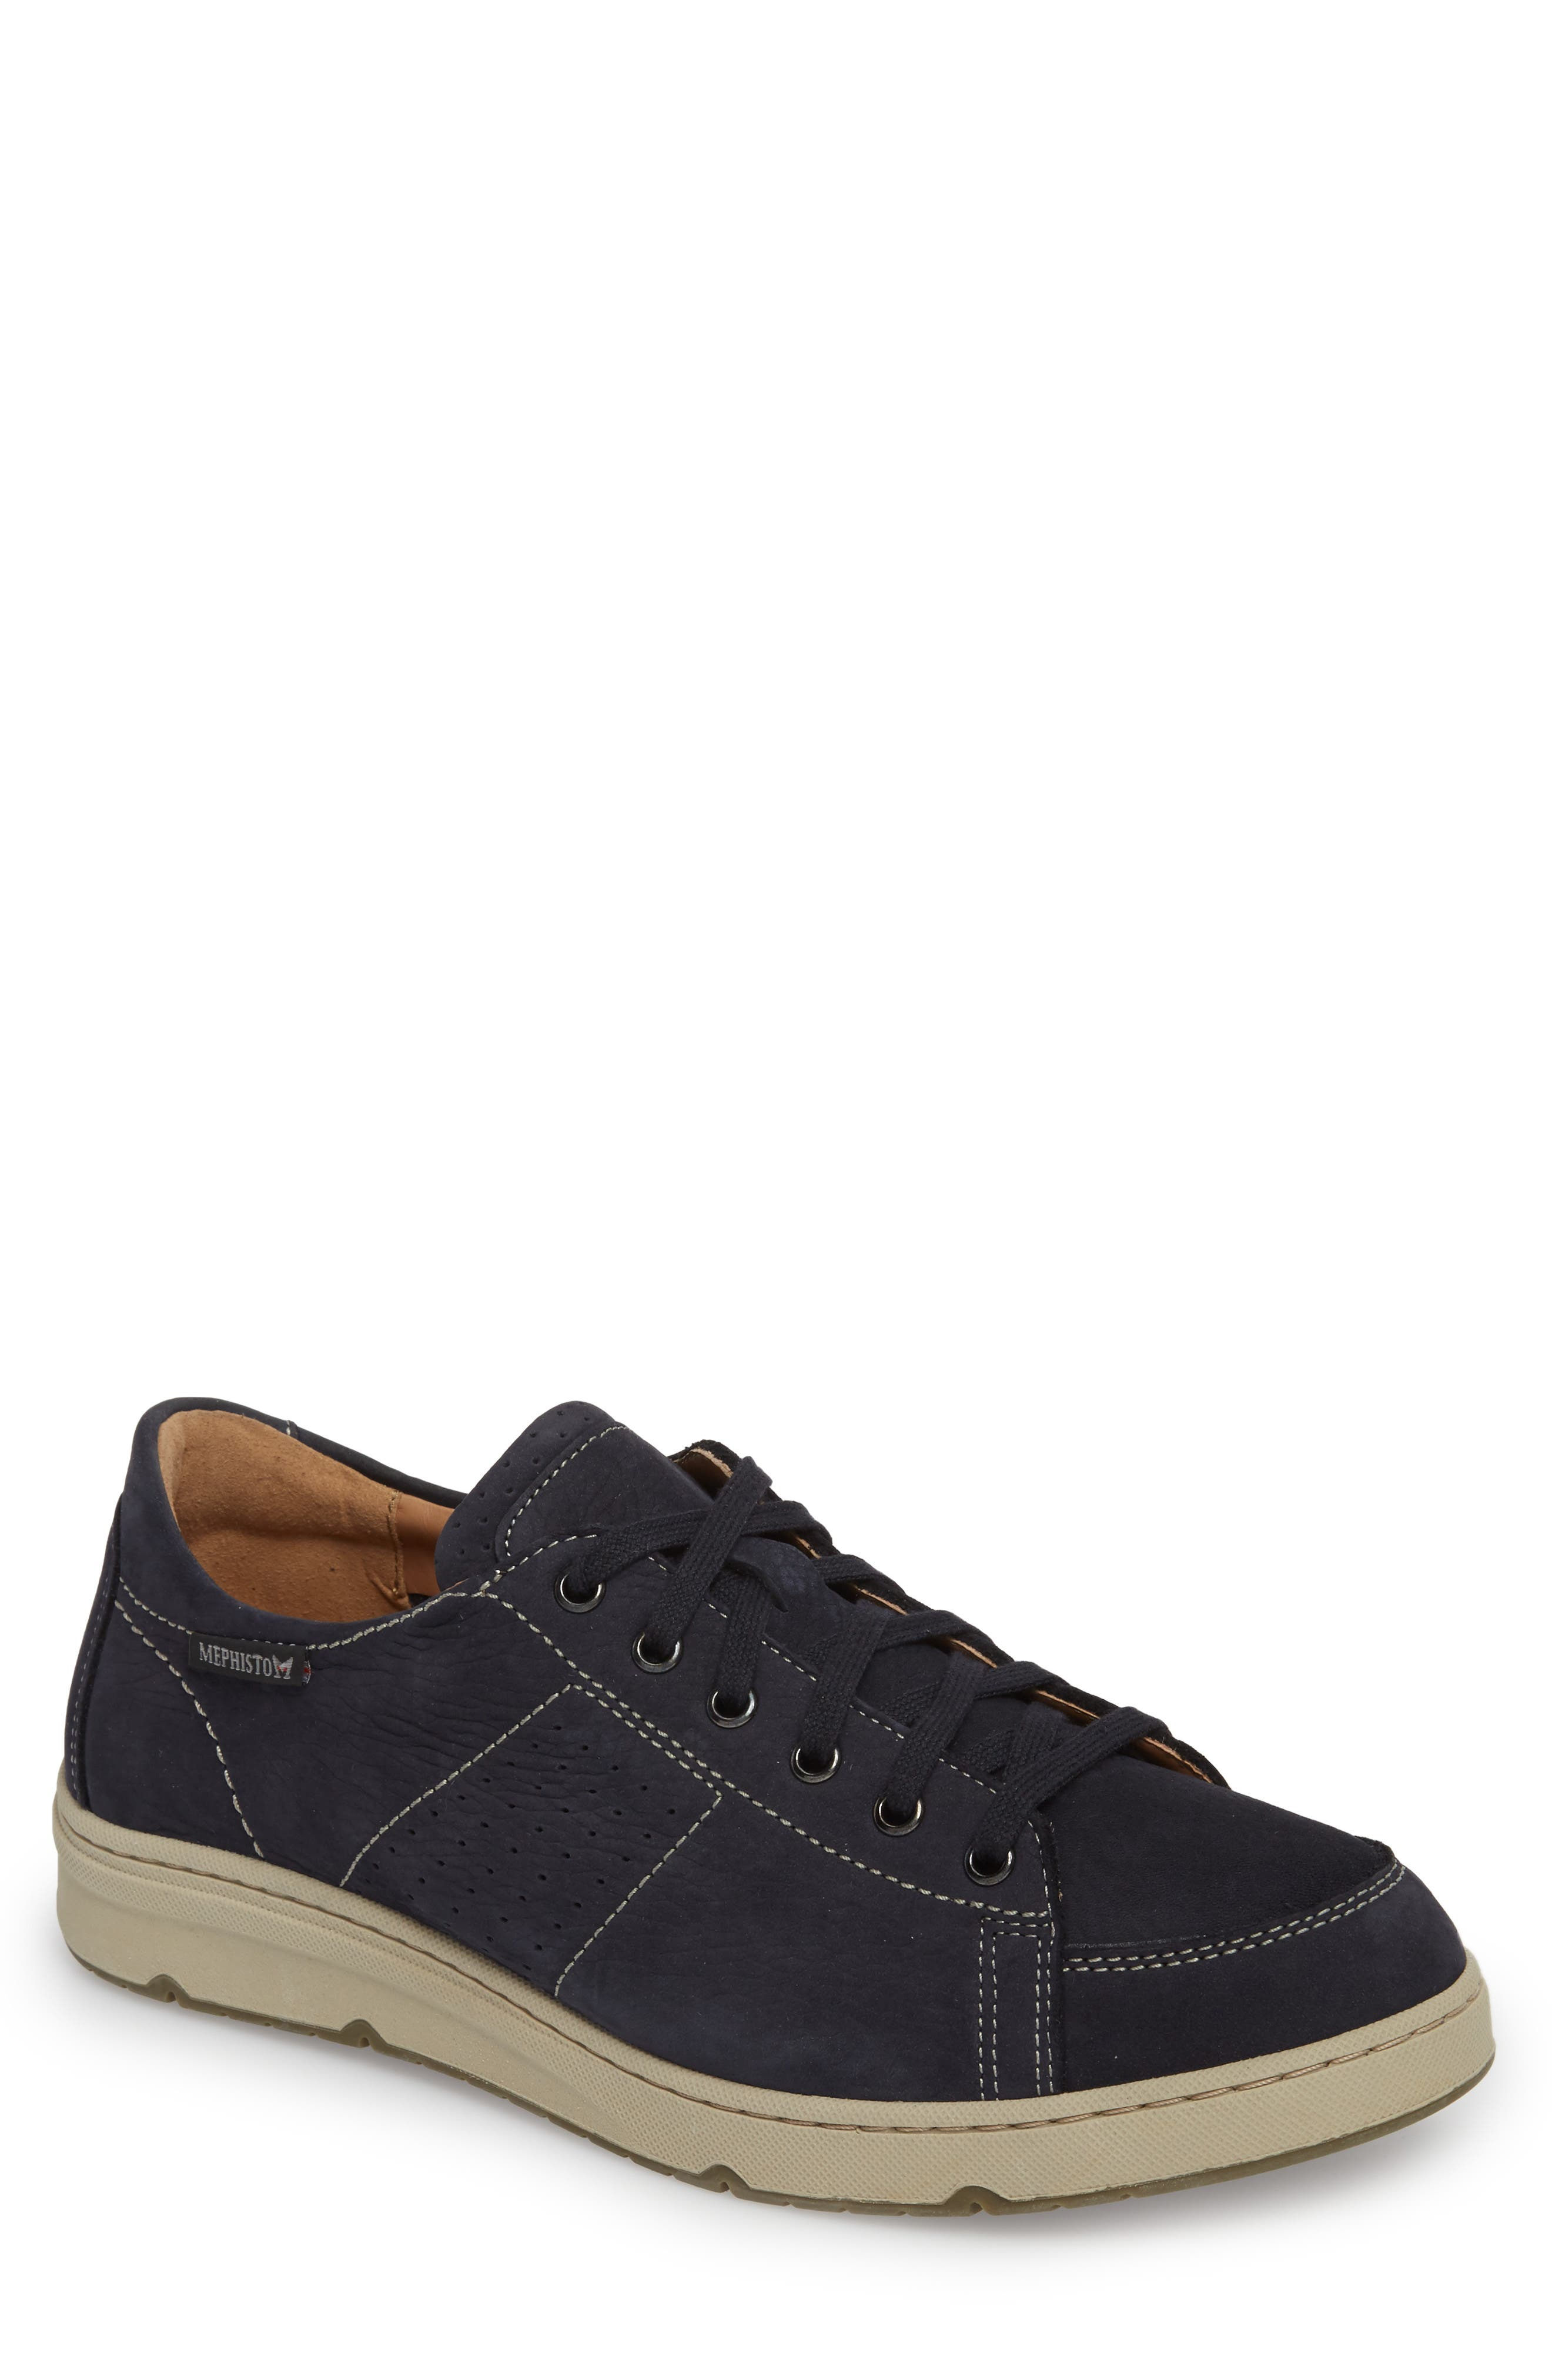 MEPHISTO,                             Jerome Sneaker,                             Main thumbnail 1, color,                             411